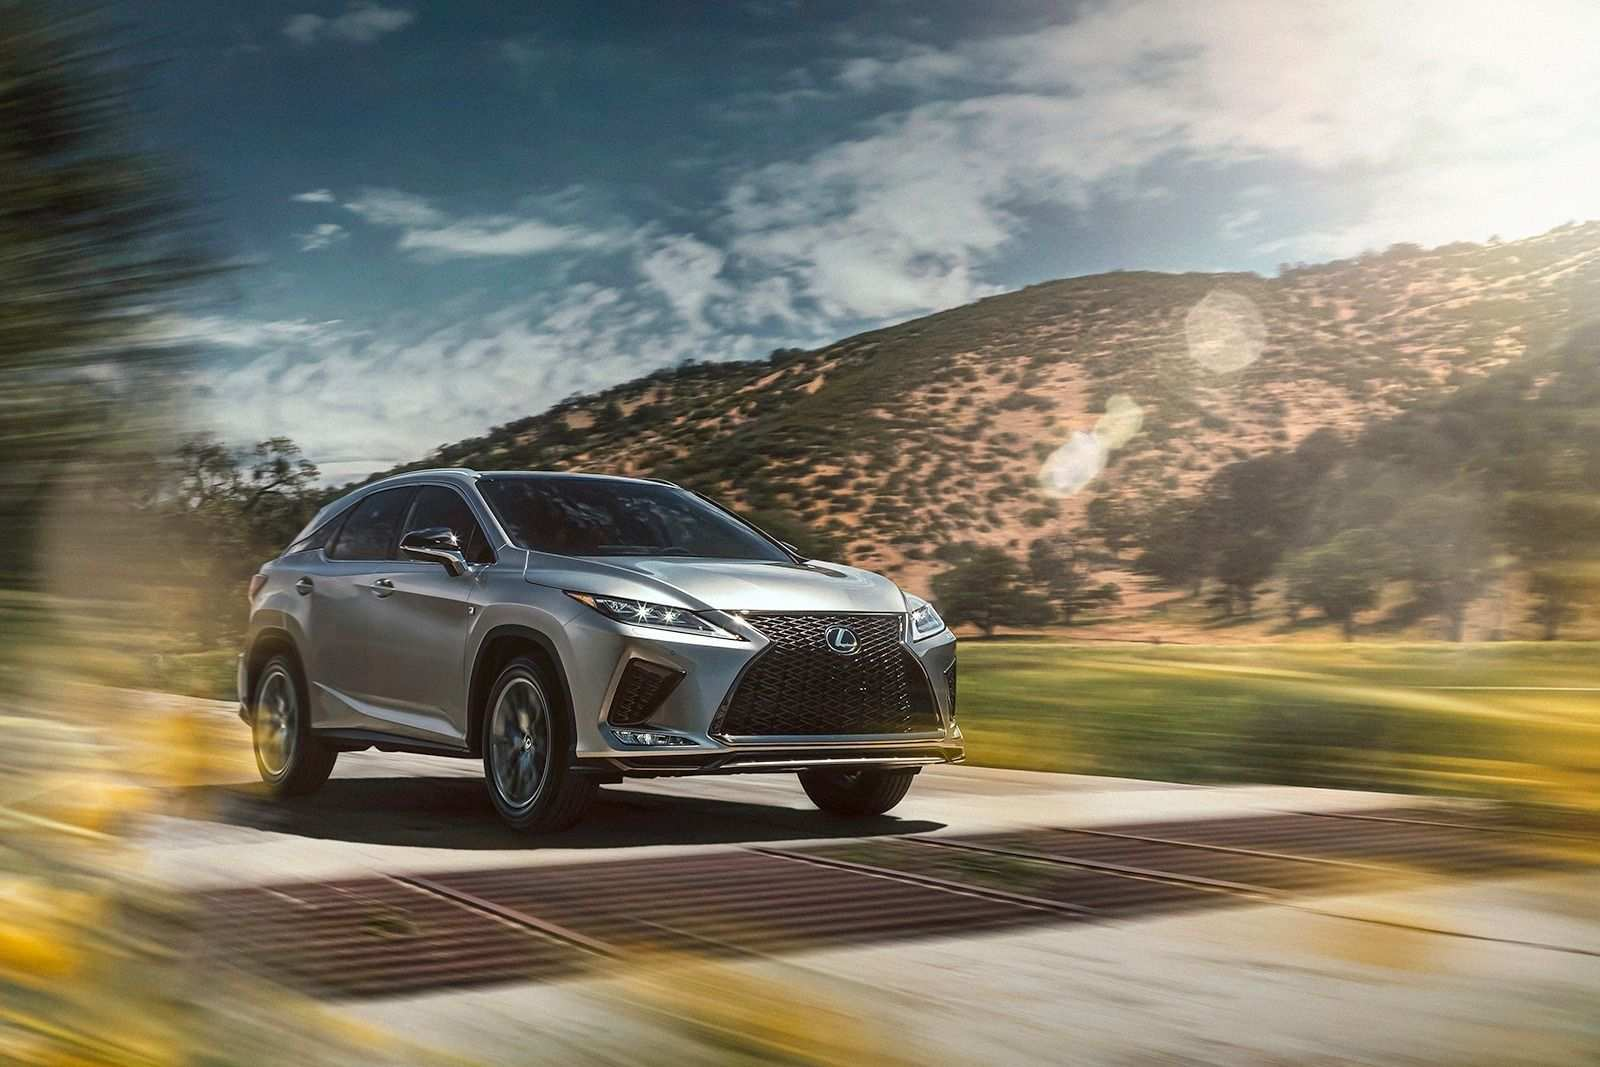 41 Concept of When Do The 2020 Lexus Cars Come Out Style with When Do The 2020 Lexus Cars Come Out